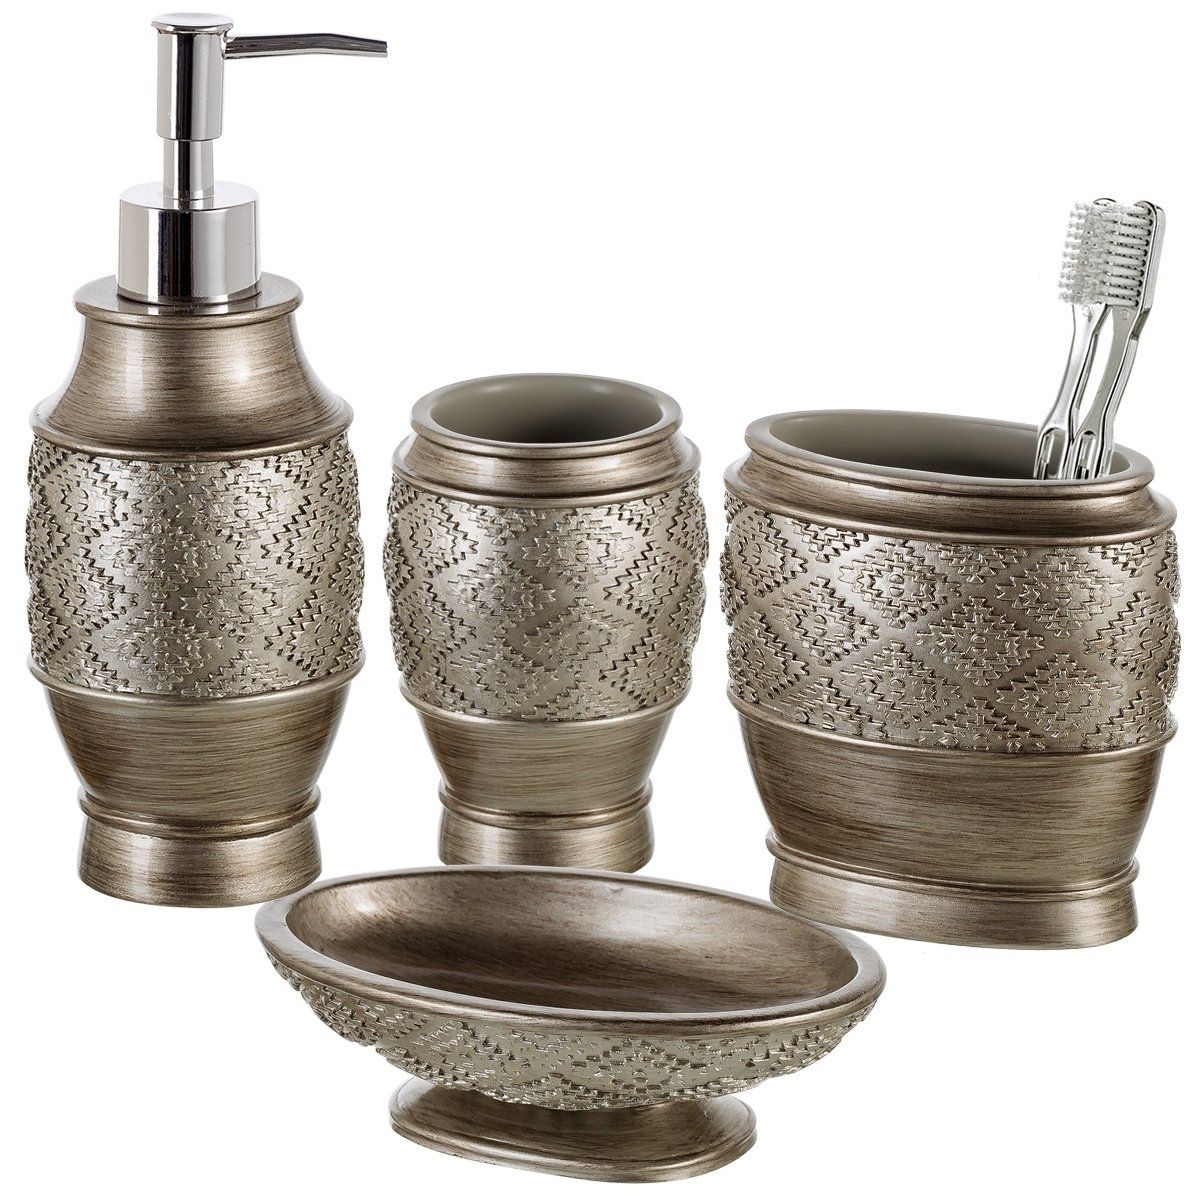 and Tumbler Cup Soap Dish and Dispenser Toothbrush Holder Gift Package by Creative Scents 4 Piece Bathroom Accessory Set Mirror Damask Style